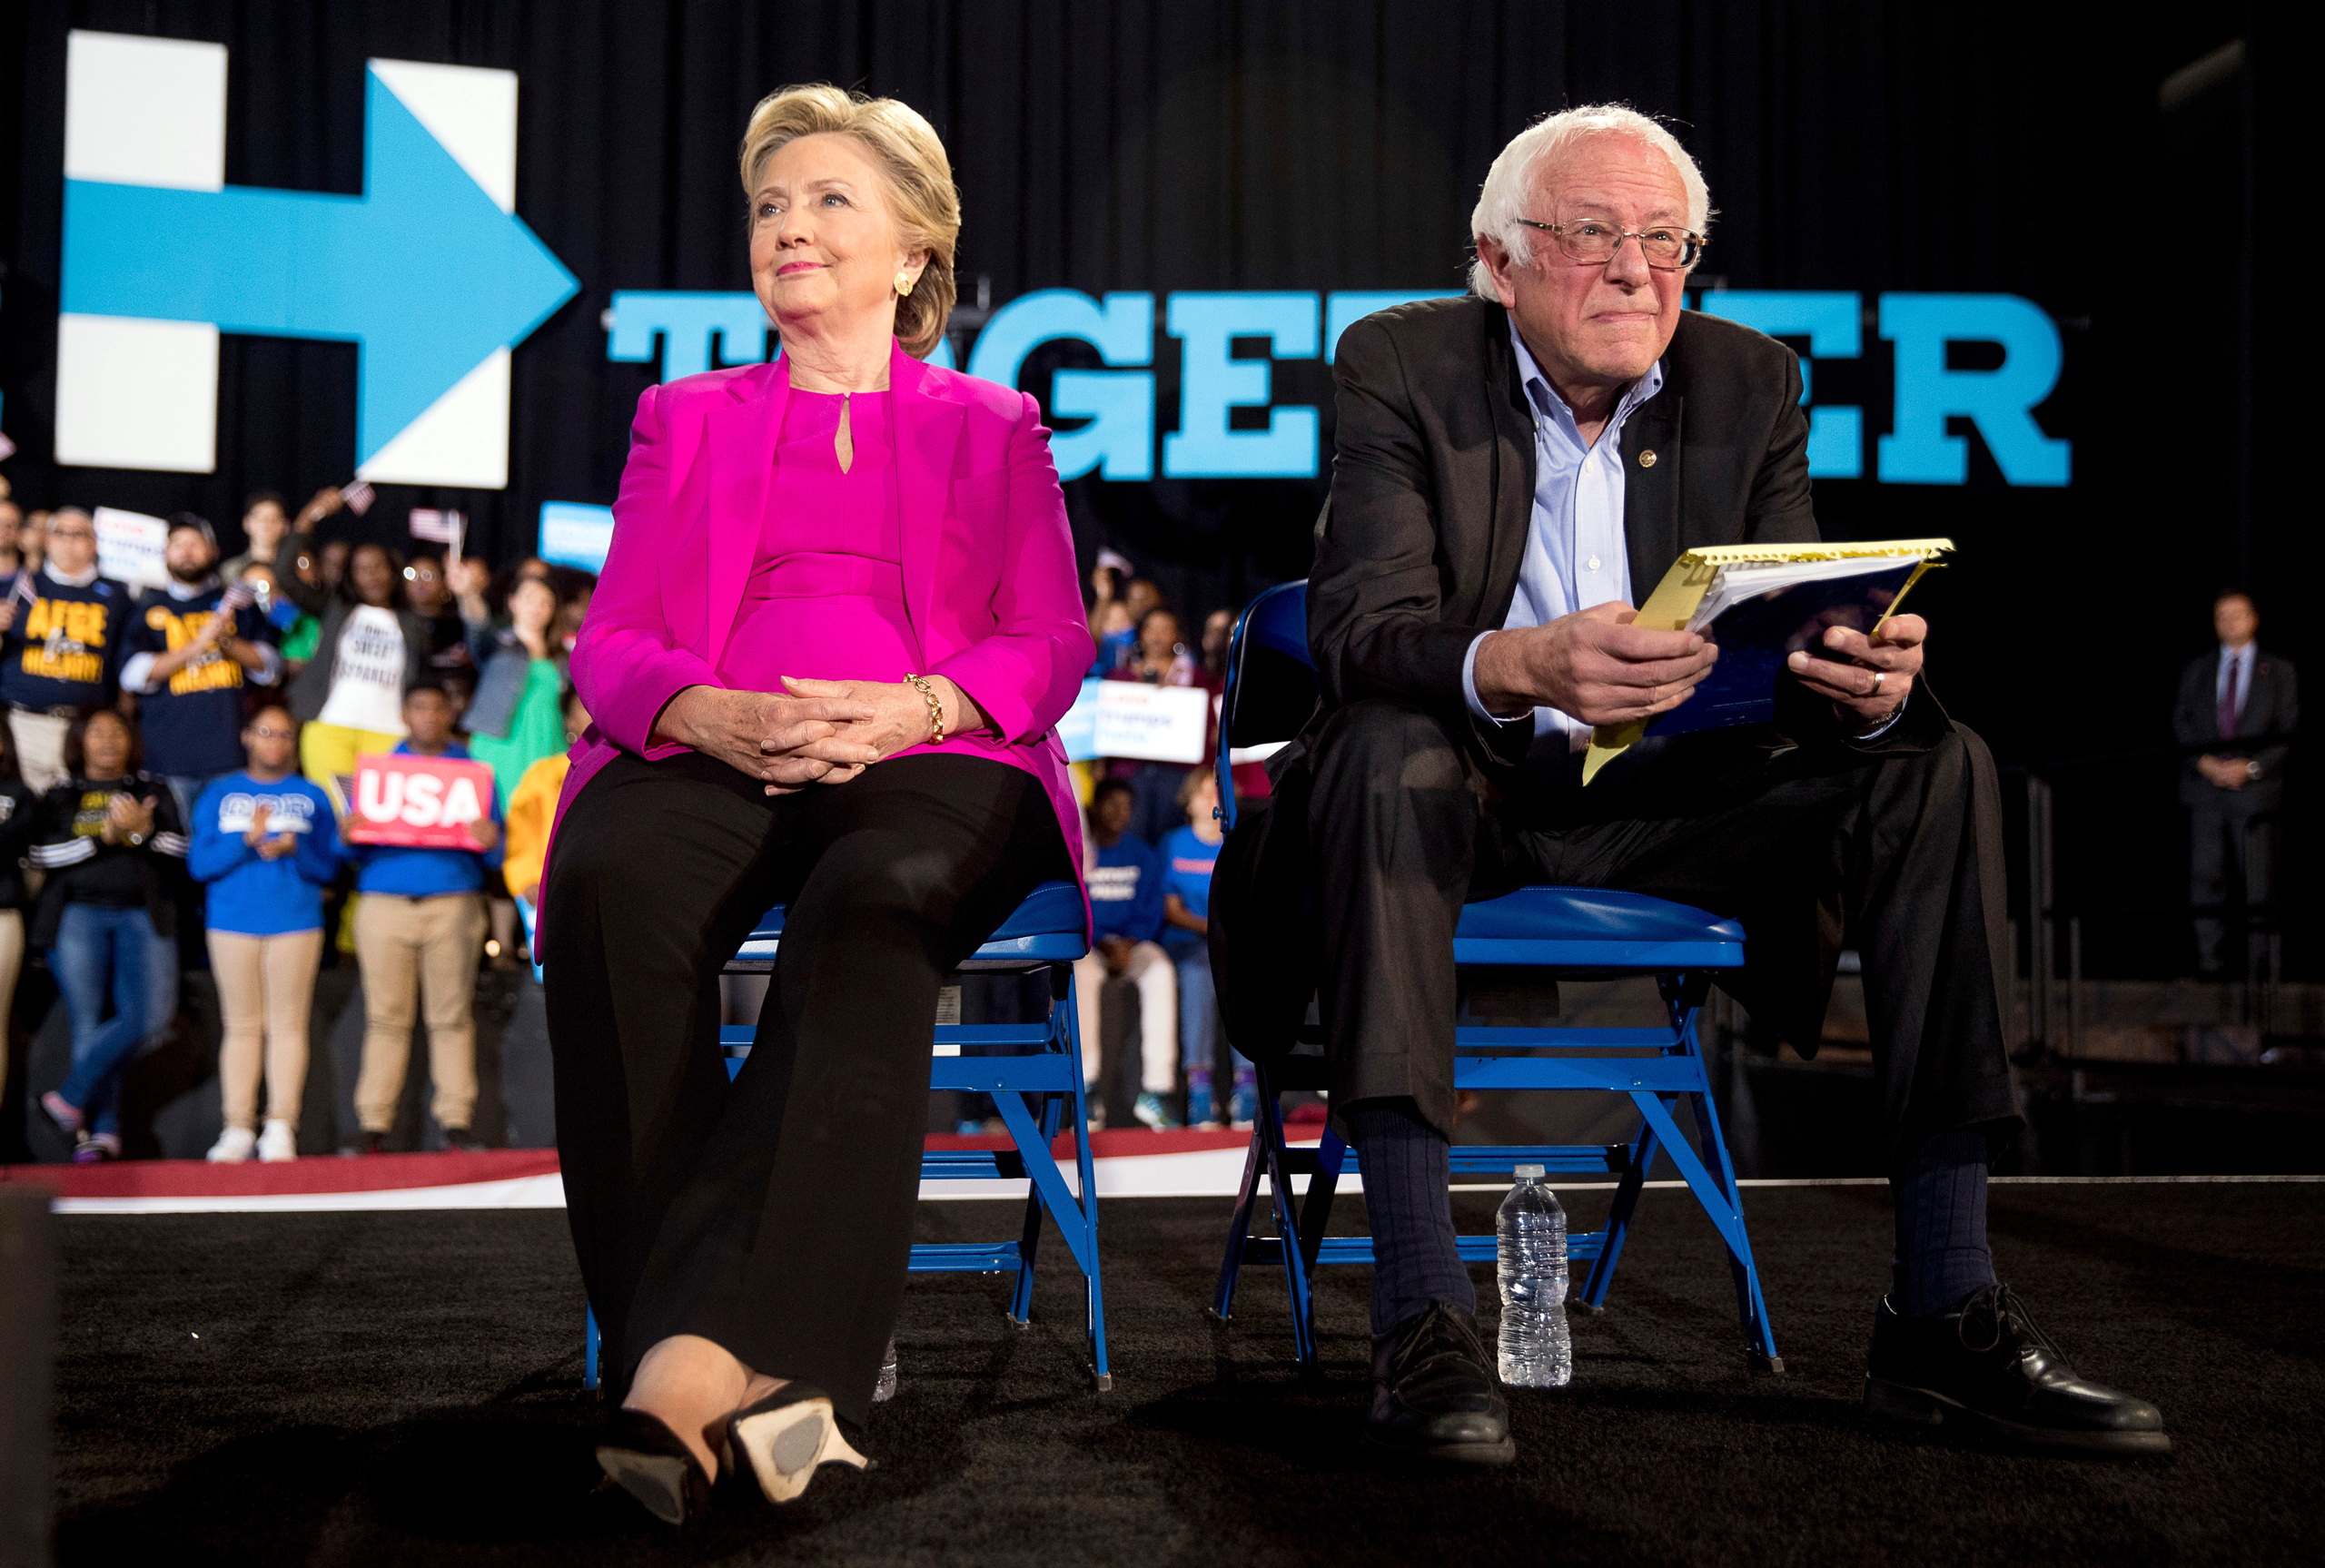 Democratic presidential candidate Hillary Clinton and Sen. Bernie Sanders appear at a rally at Coastal Credit Union Music Park at Walnut Creek in Raleigh, N.C., on Nov. 3, 2016.